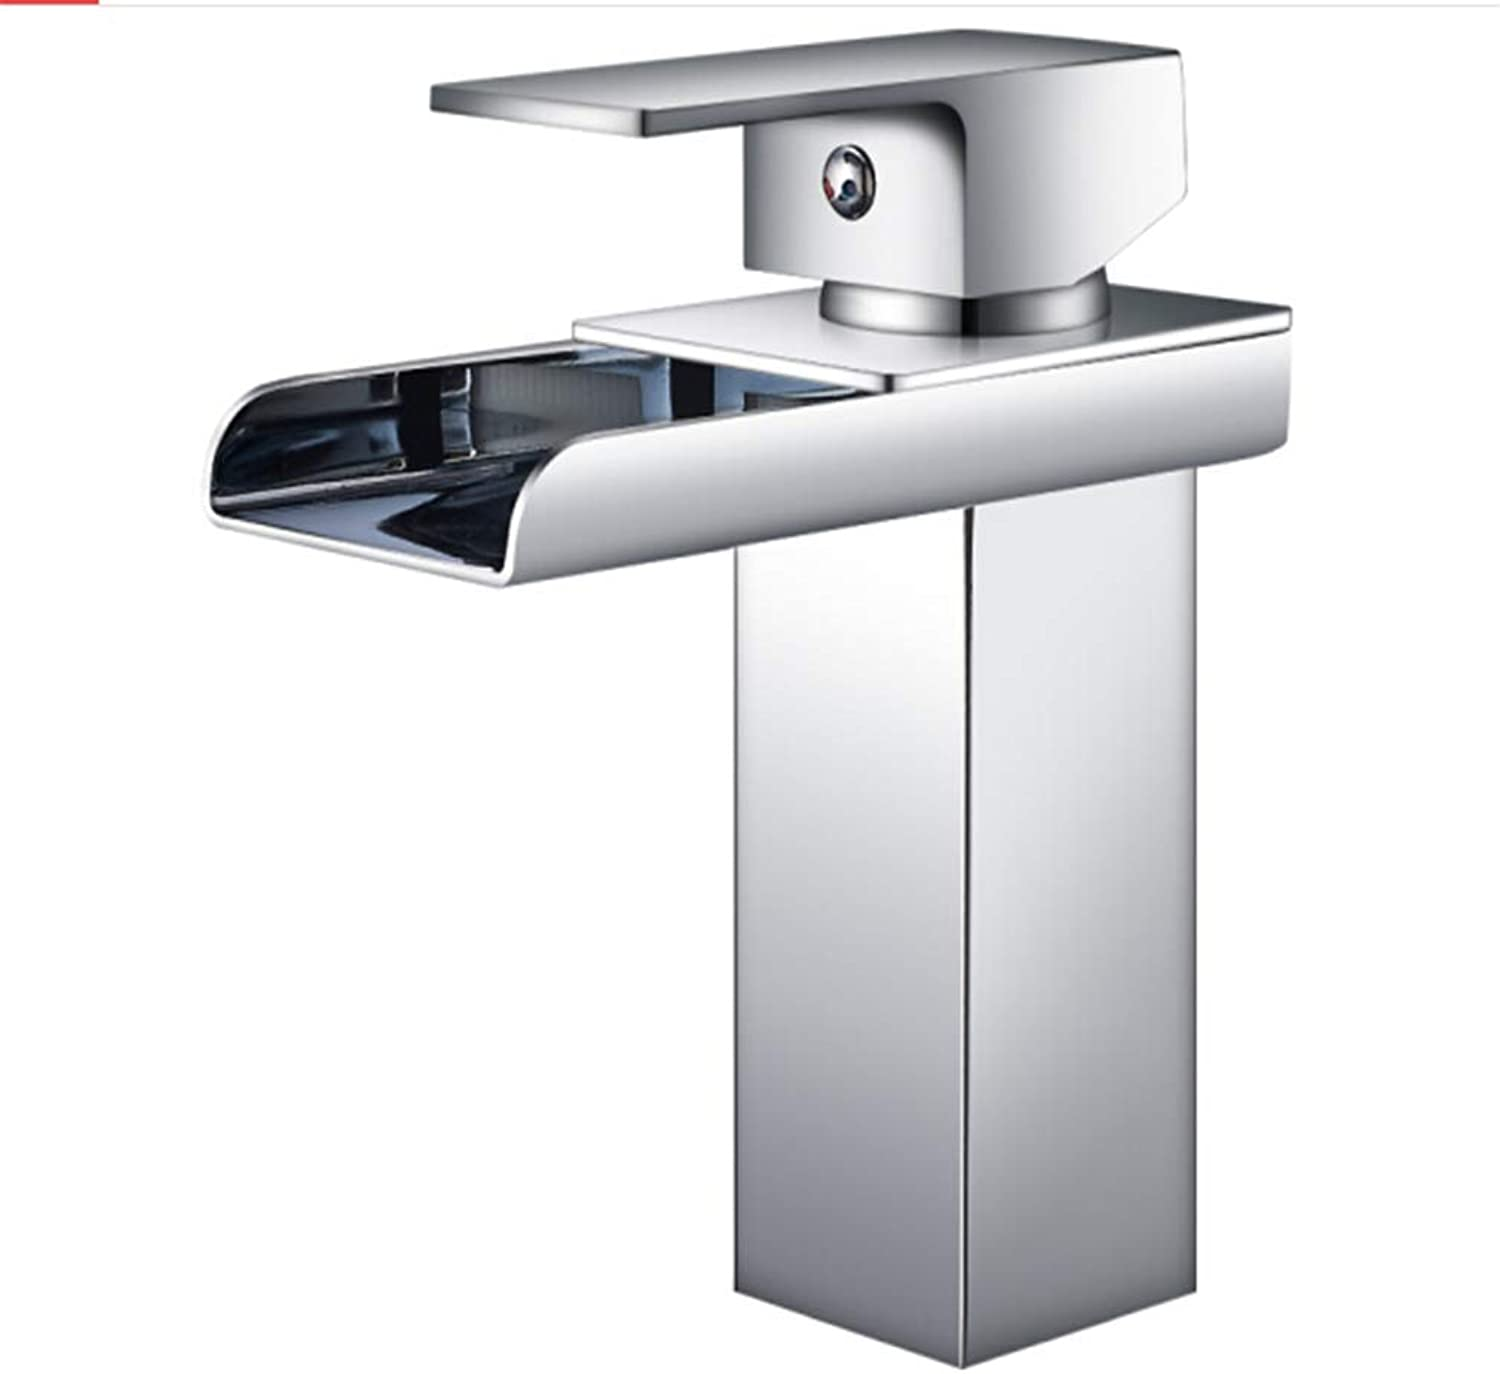 Counter Drinking Designer Archbasin Faucet Hot and Cold Washbasin Faucet Waterfall Type Water Outlet Faucet